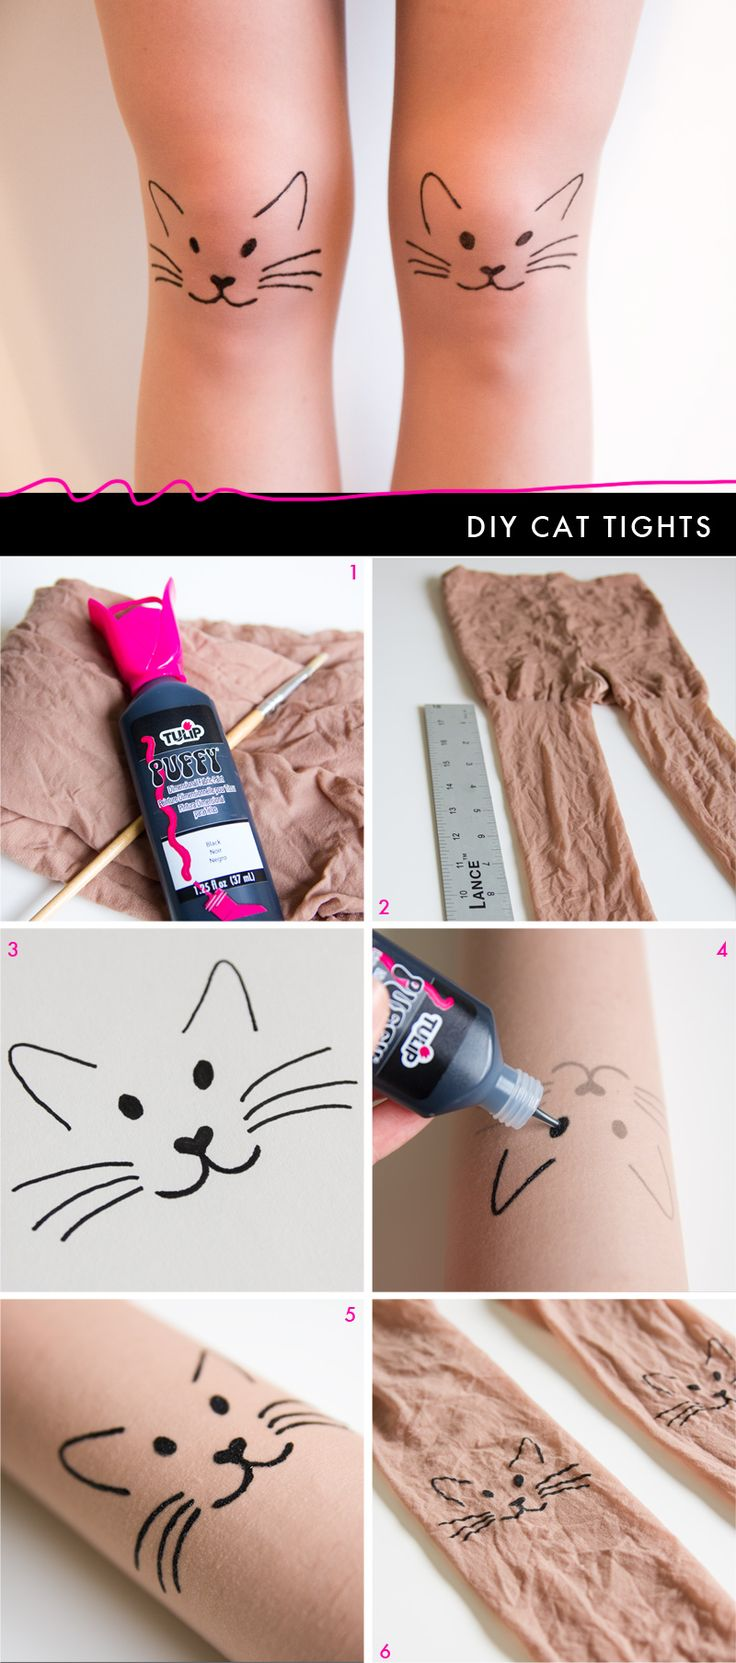 DIY cat tights